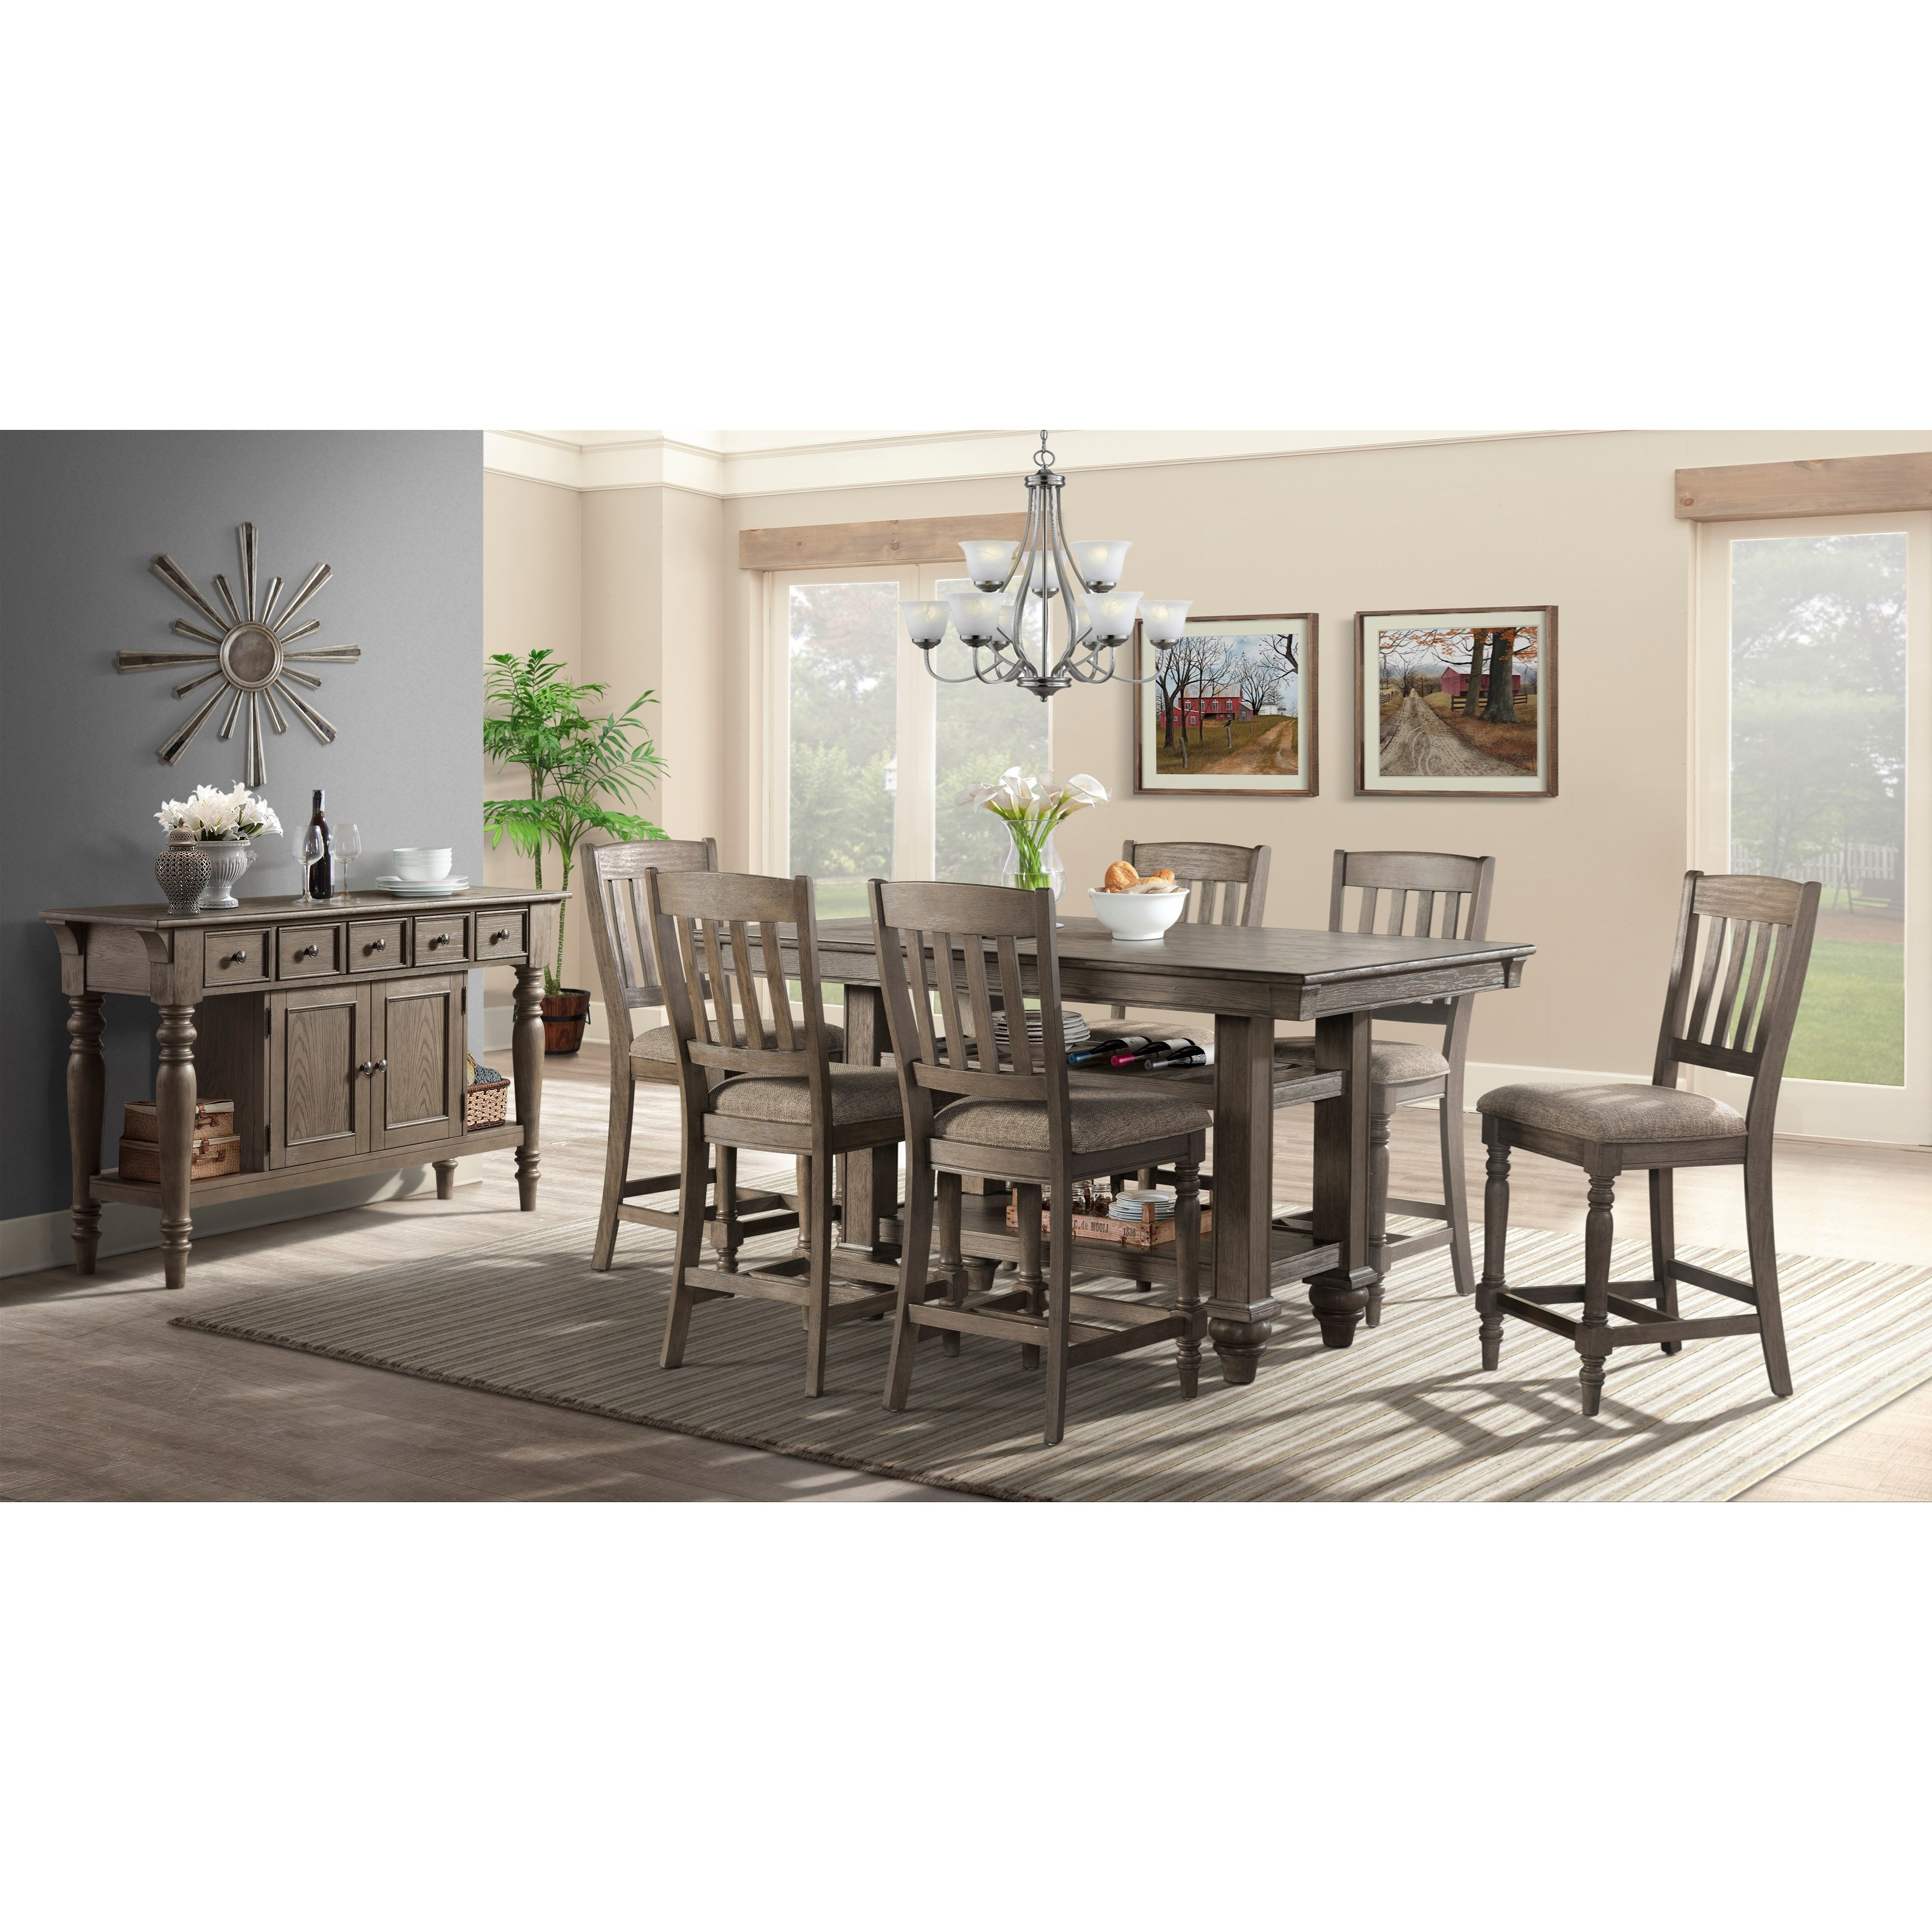 Balboa Park  Formal Dining Group by VFM Signature at Virginia Furniture Market